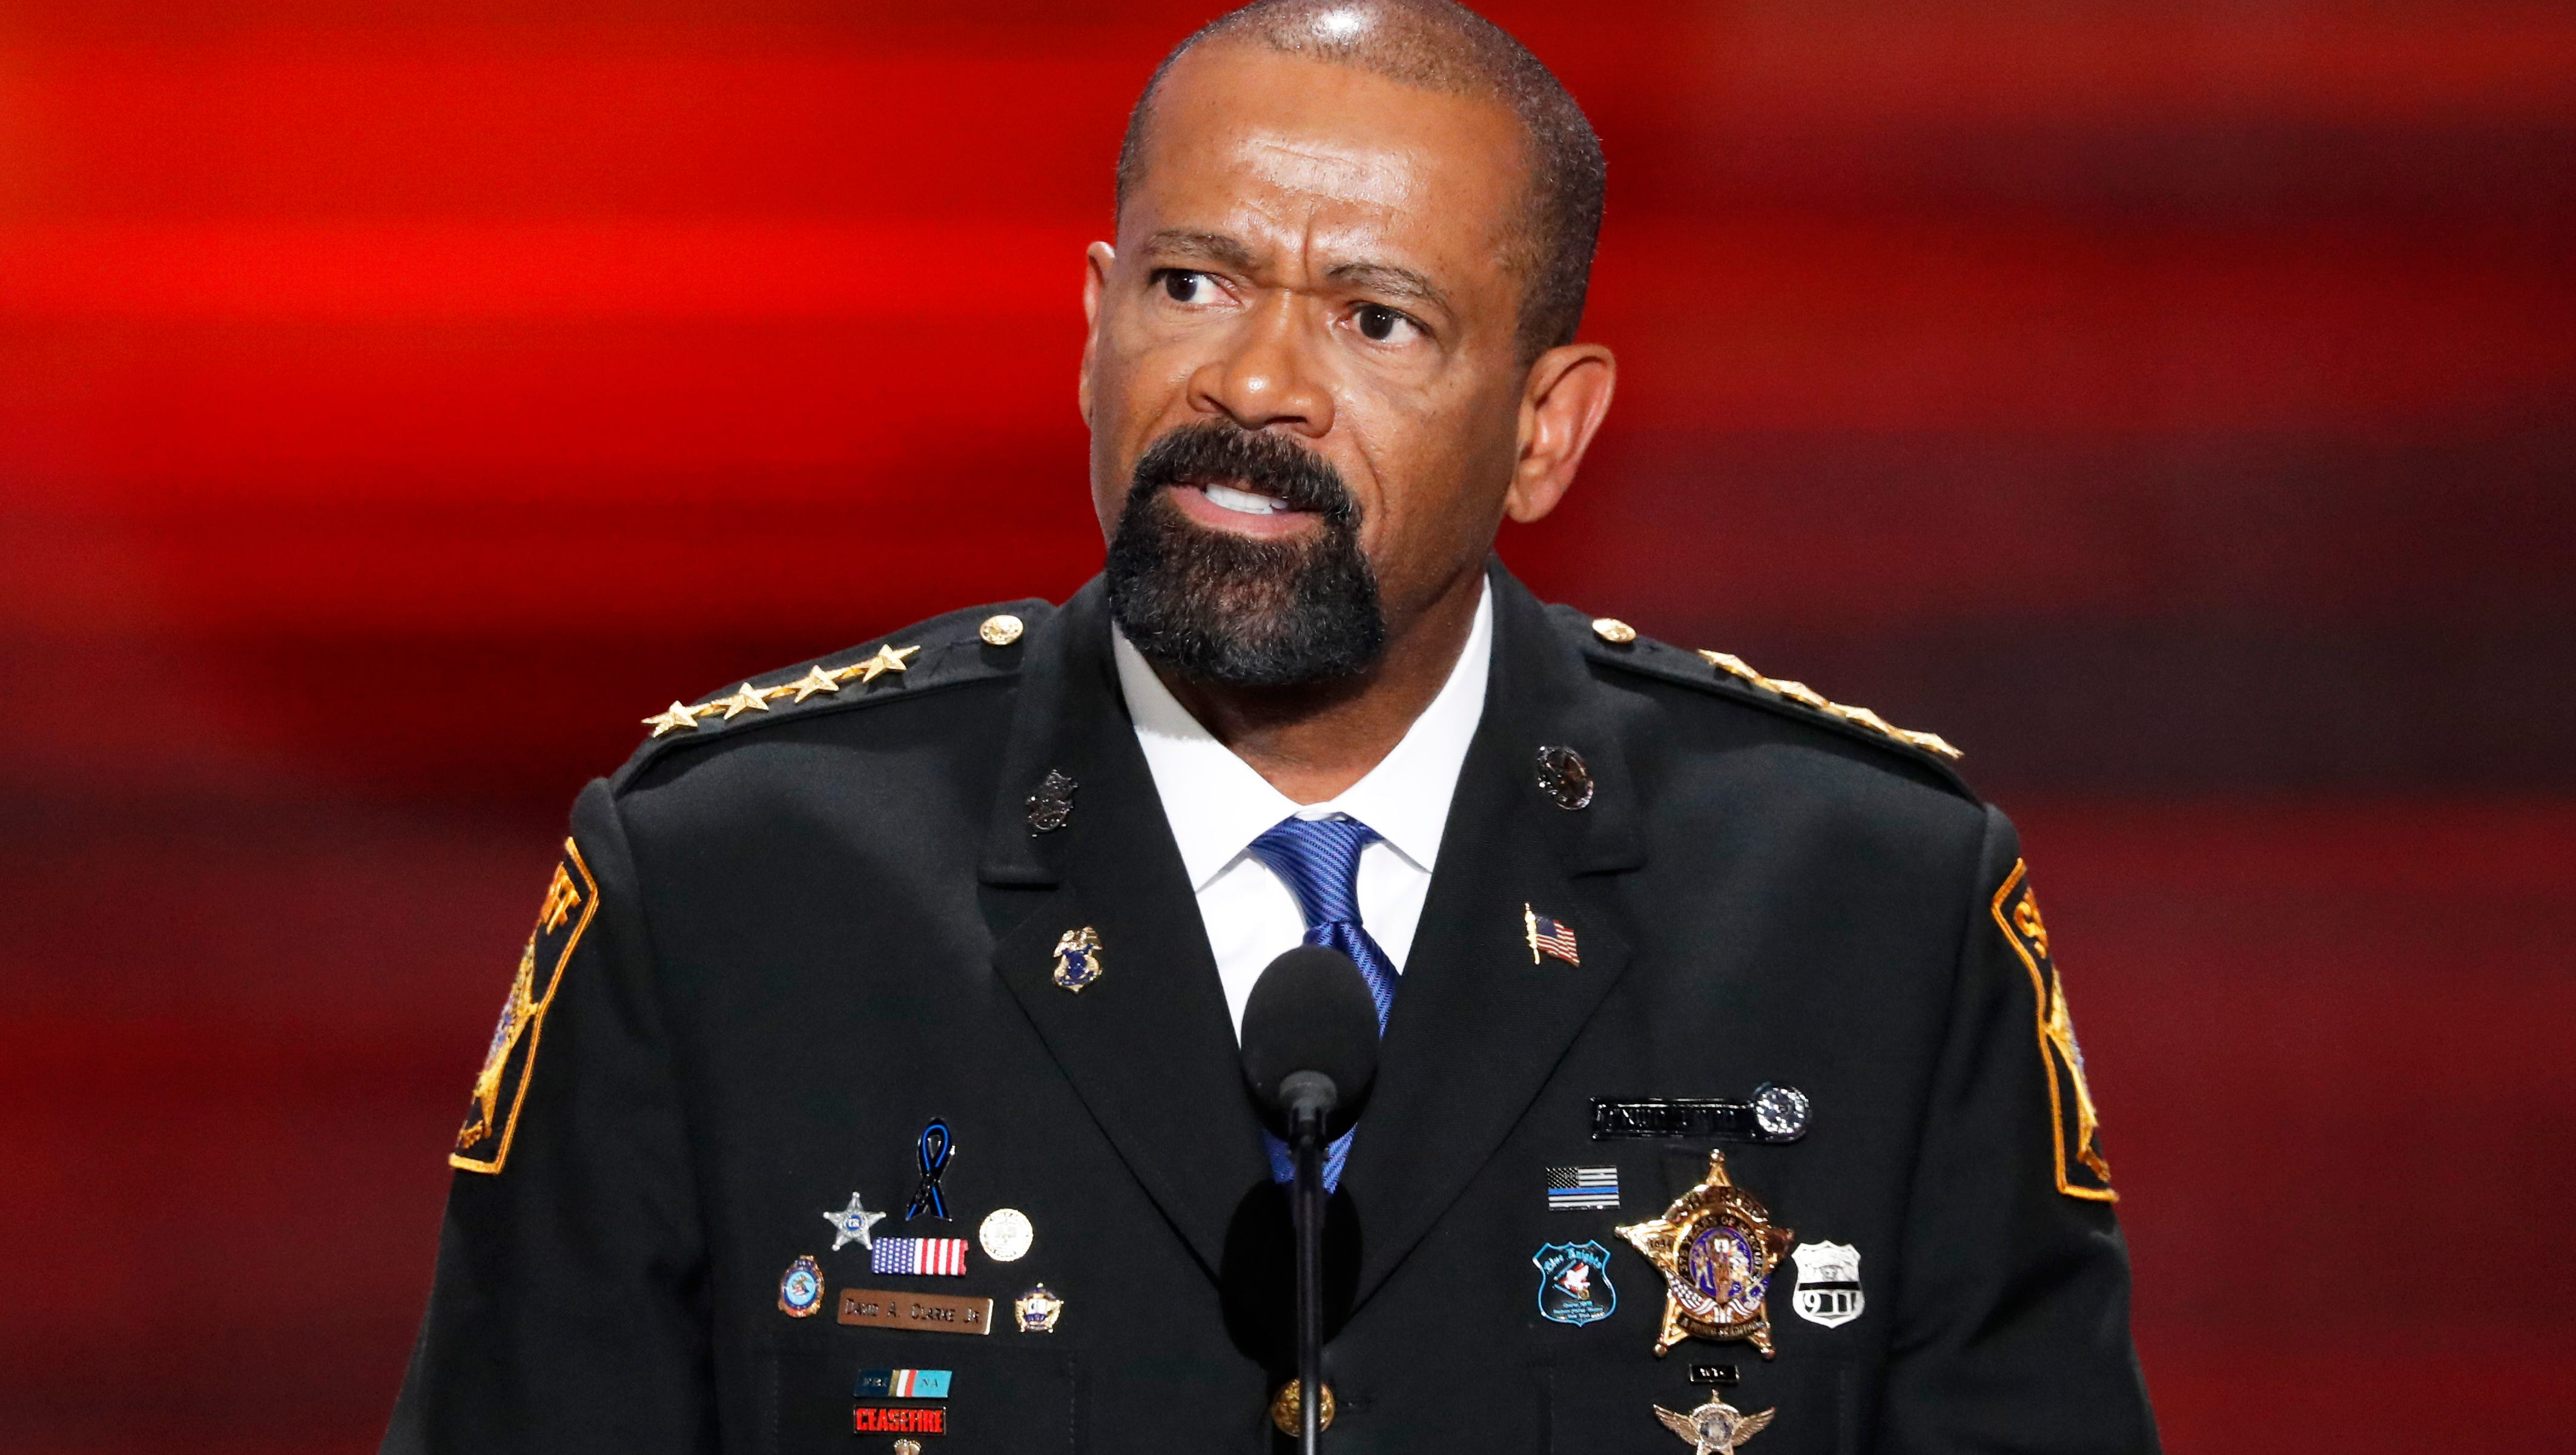 Sheriff Clarke's 2013 thesis faces academic review after plagiarism accusations